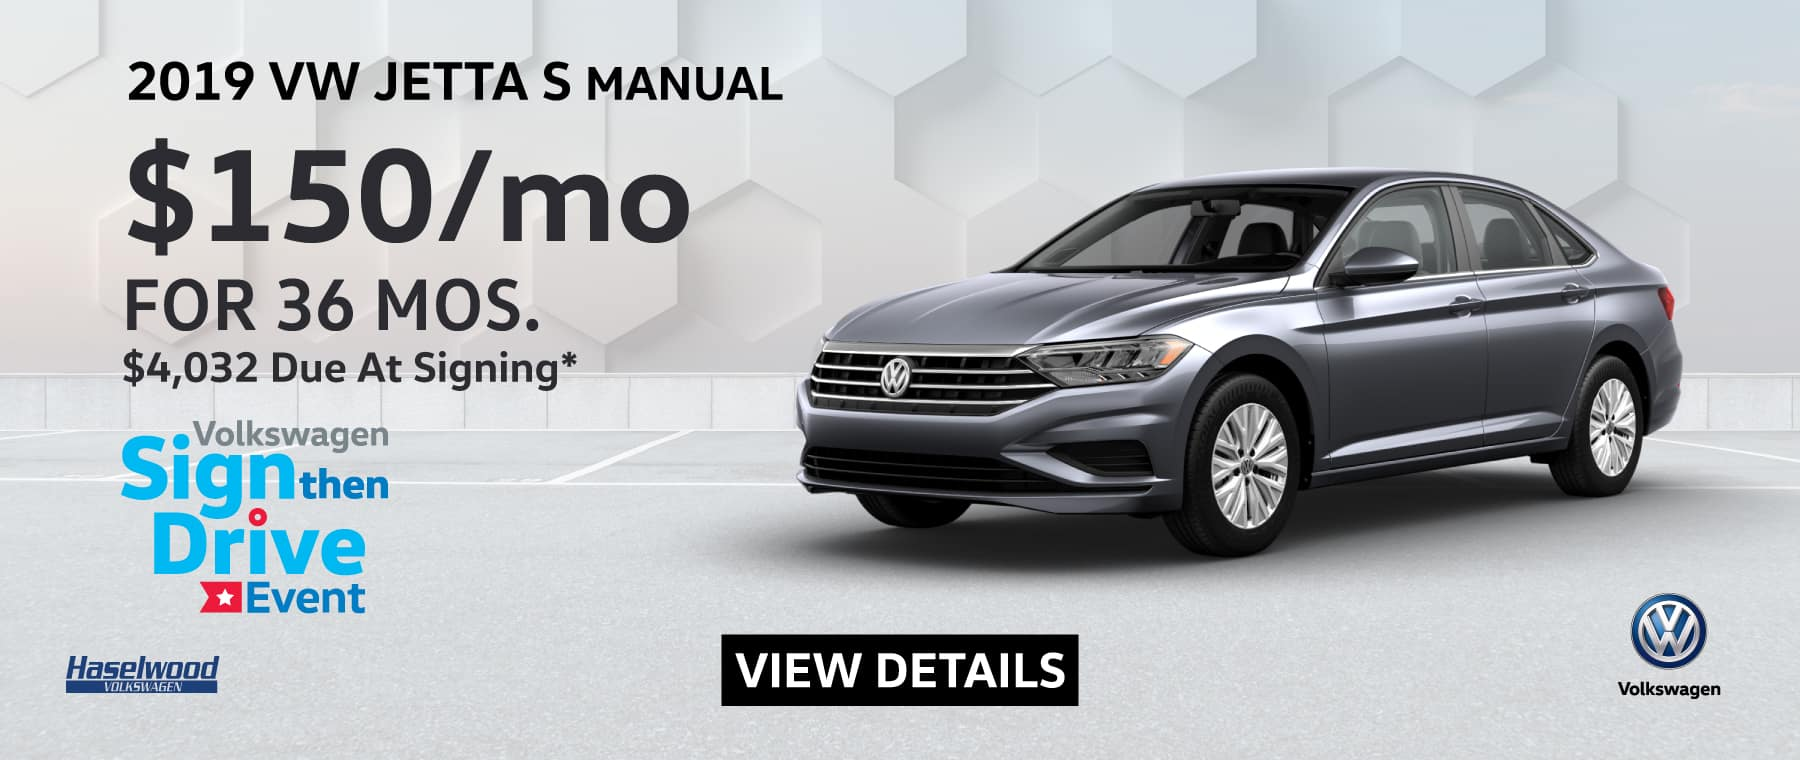 2019 VW Jetta S Manual (Featured Vehicle)  $150/mo. for 36 months $4,032 Due at Signing    * Offer valid on 2019 VW Jetta S Manual. $150 per mo. for 36 months. Lease with $4,032 down; includes a $595 acquisition fee, finance through Volkswagen Credit. No security deposit required. Valid on VIN: 3VWN57BU4KM119022.For highly qualified customers on approved top tier credit through Volkswagen Credit. Lessee responsible for maintenance, excessive wear/tear and 20¢/mi over 10K mi/yr. Excludes state and local taxes, tags, registration and title, insurance and dealer charges. Subject to credit approval. 36 monthly payments required. Monthly lease payment based on MSRP of $20,160 and destination charges less a suggested dealer contribution resulting in a Gross capitalized cost of $18,920. Cap cost reduction: $1,240. A negotiable dealer documentary service fee of up to $150 may be added to the sale price or capitalized cost. See dealer for complete details and restrictions. 6 years/72,000 miles (whichever occurs first). New Vehicle Limited Warranty on MY2018 and newer VW vehicles, excluding e-Golf. See owner's literature or dealer for warranty exclusions and limitations. Exp. 5/31/2019.